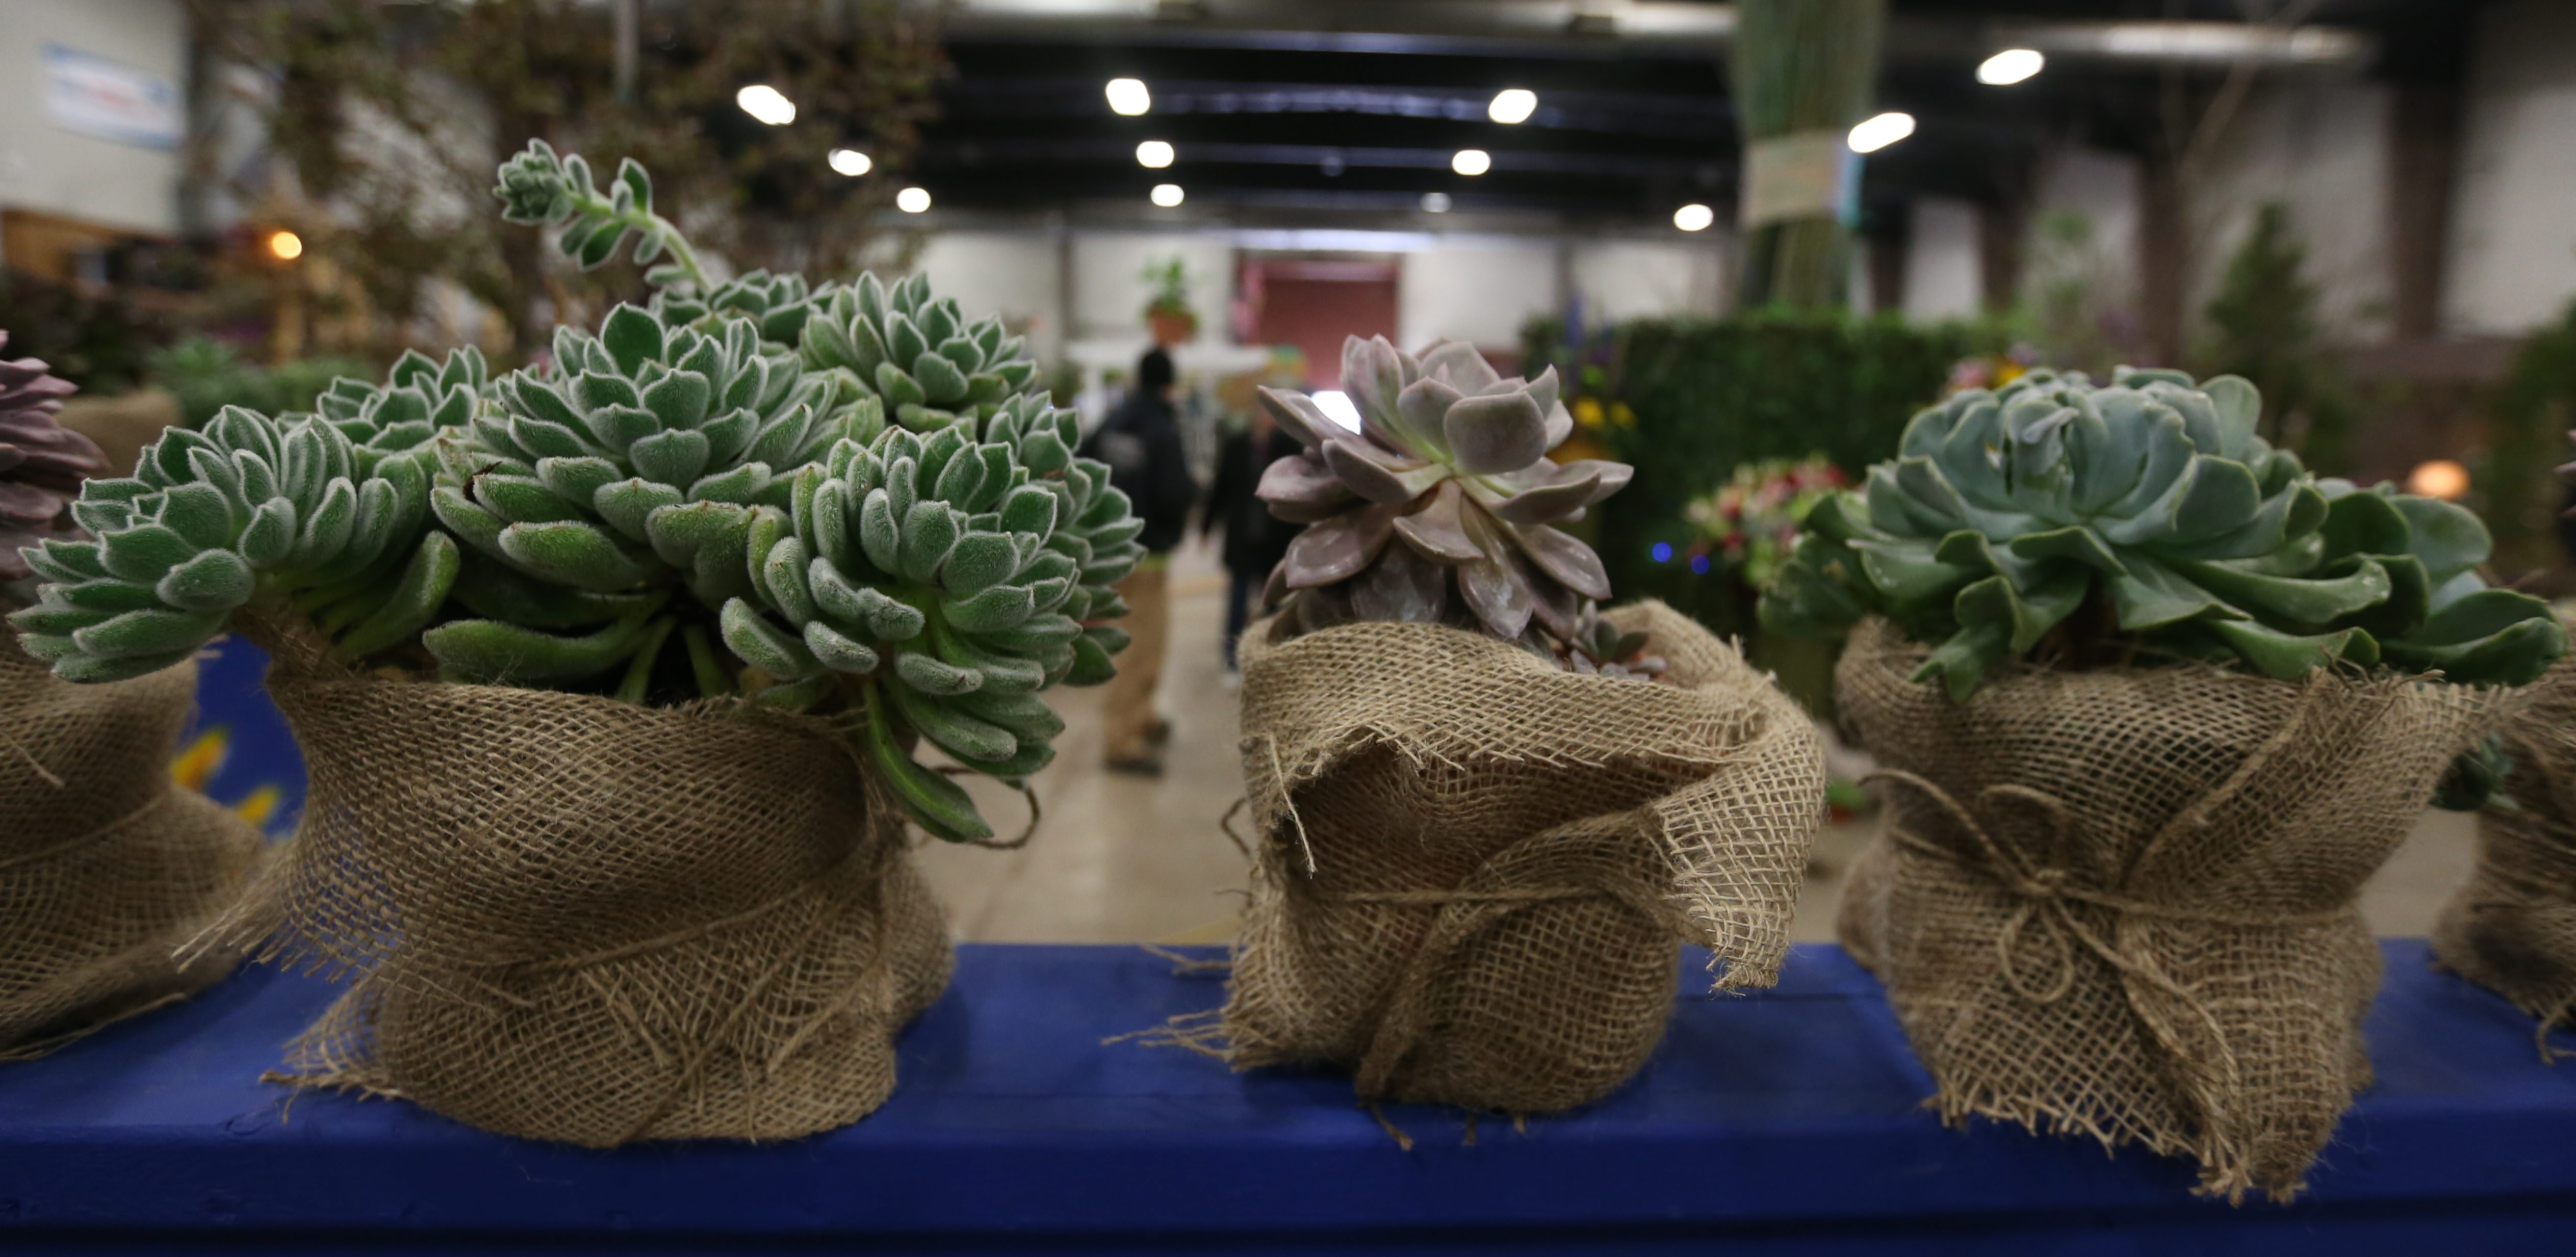 Succulents were well represented at the Plantasia show last weekend in Hamburg.